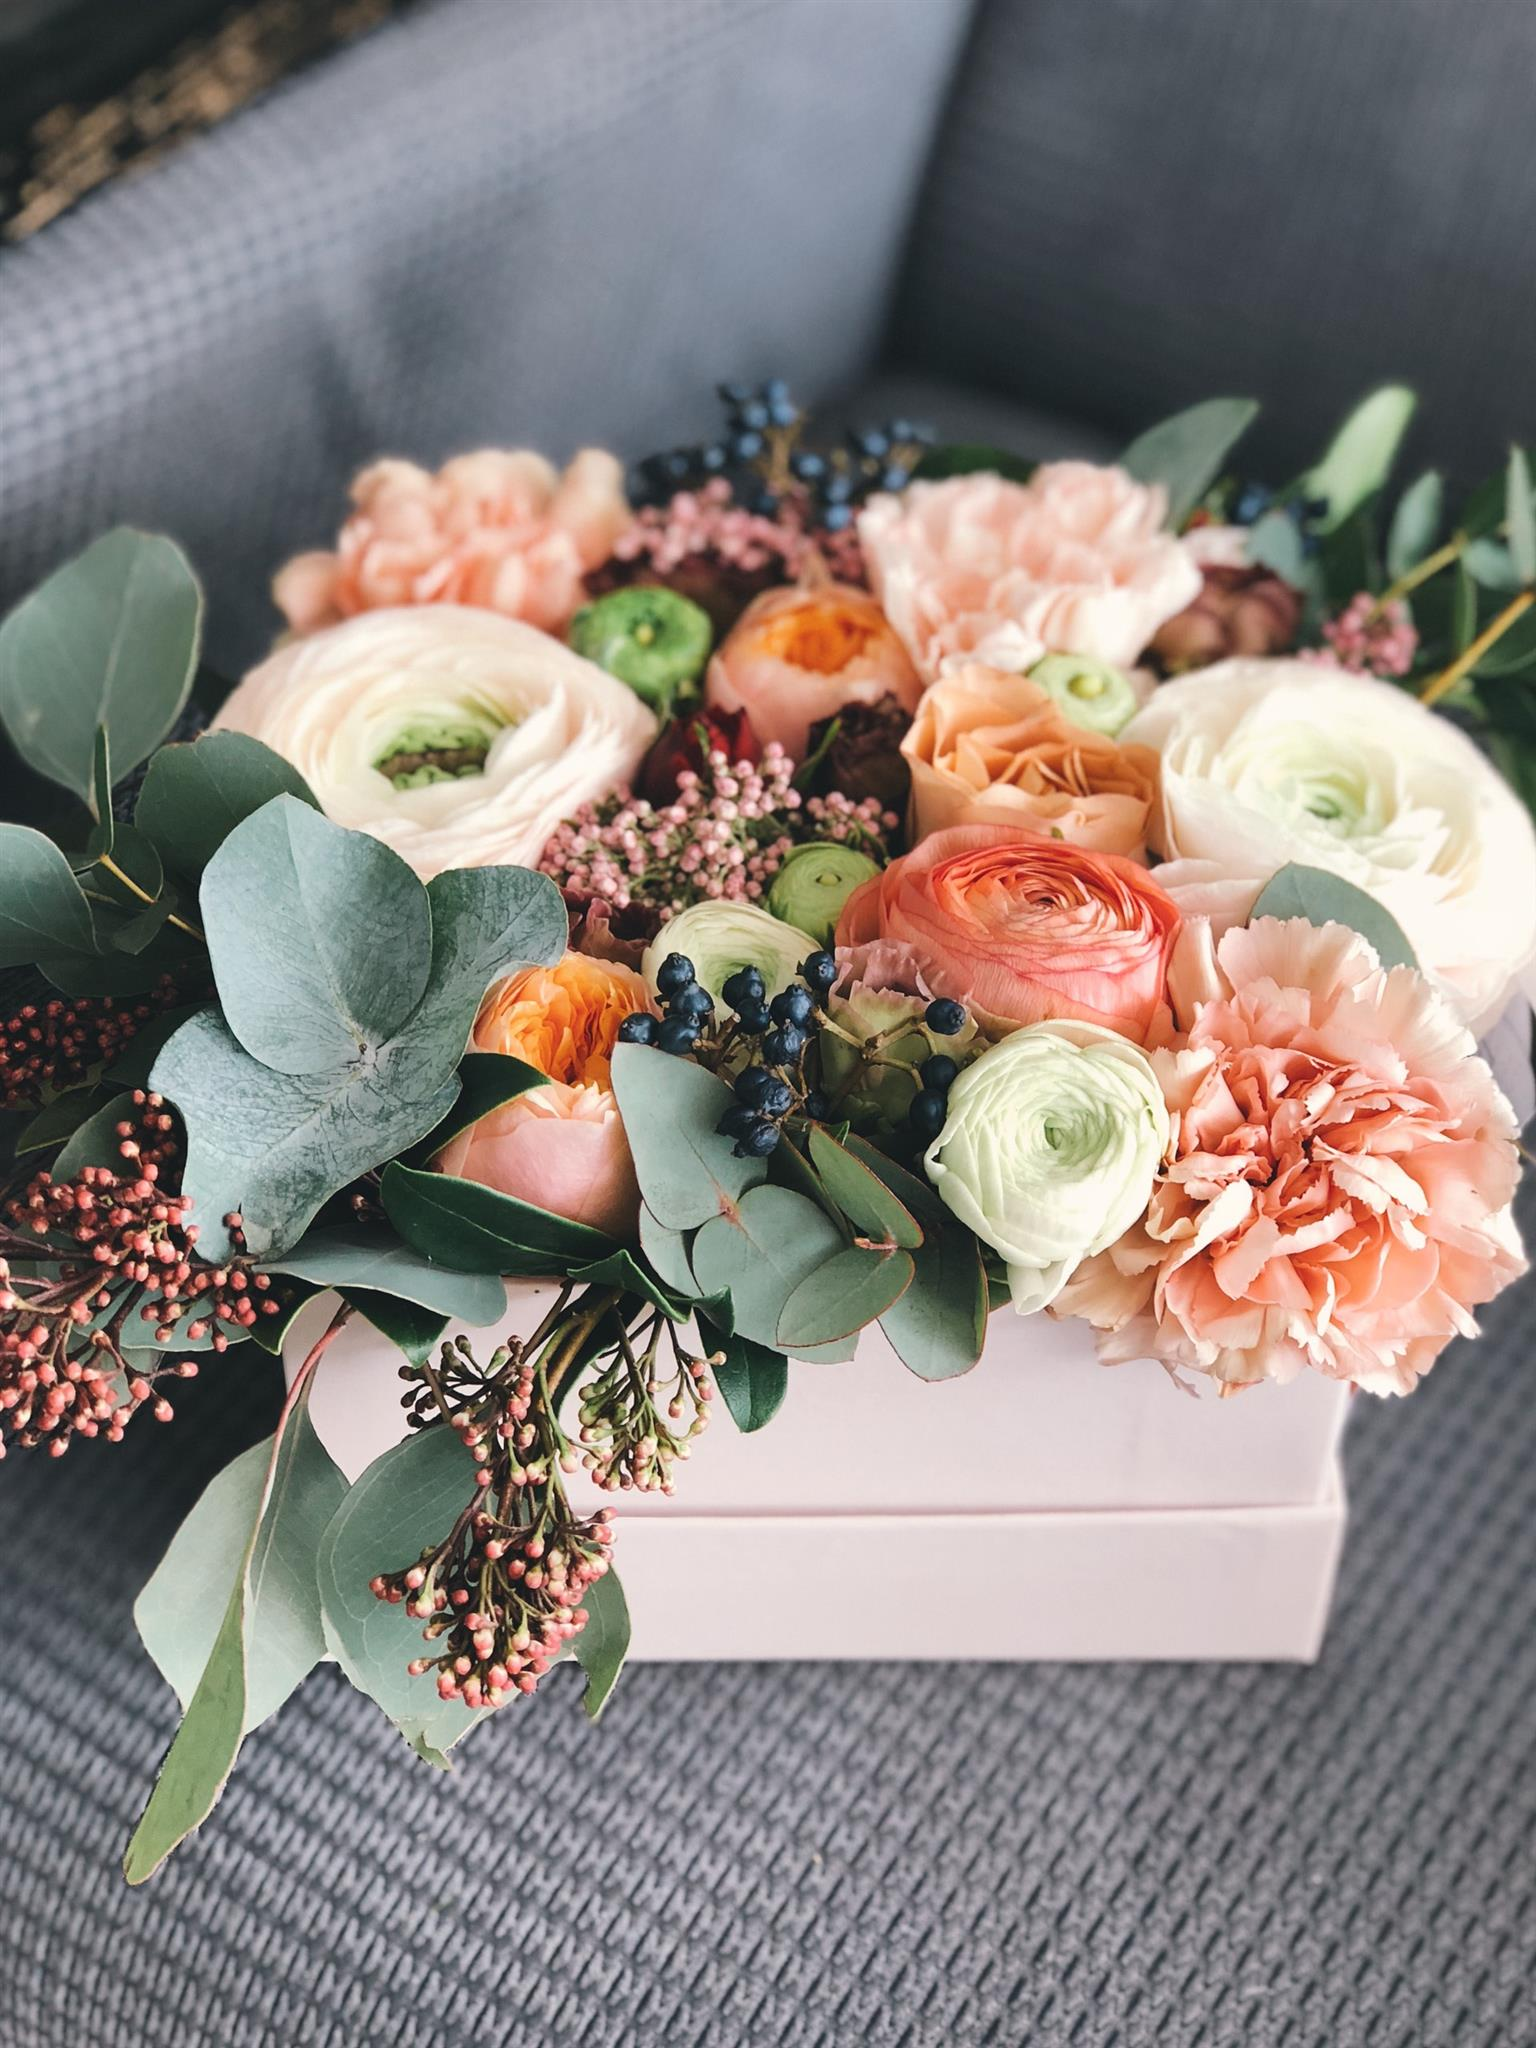 The Art of Choosing the Perfect Flower for Your Occasion assortment